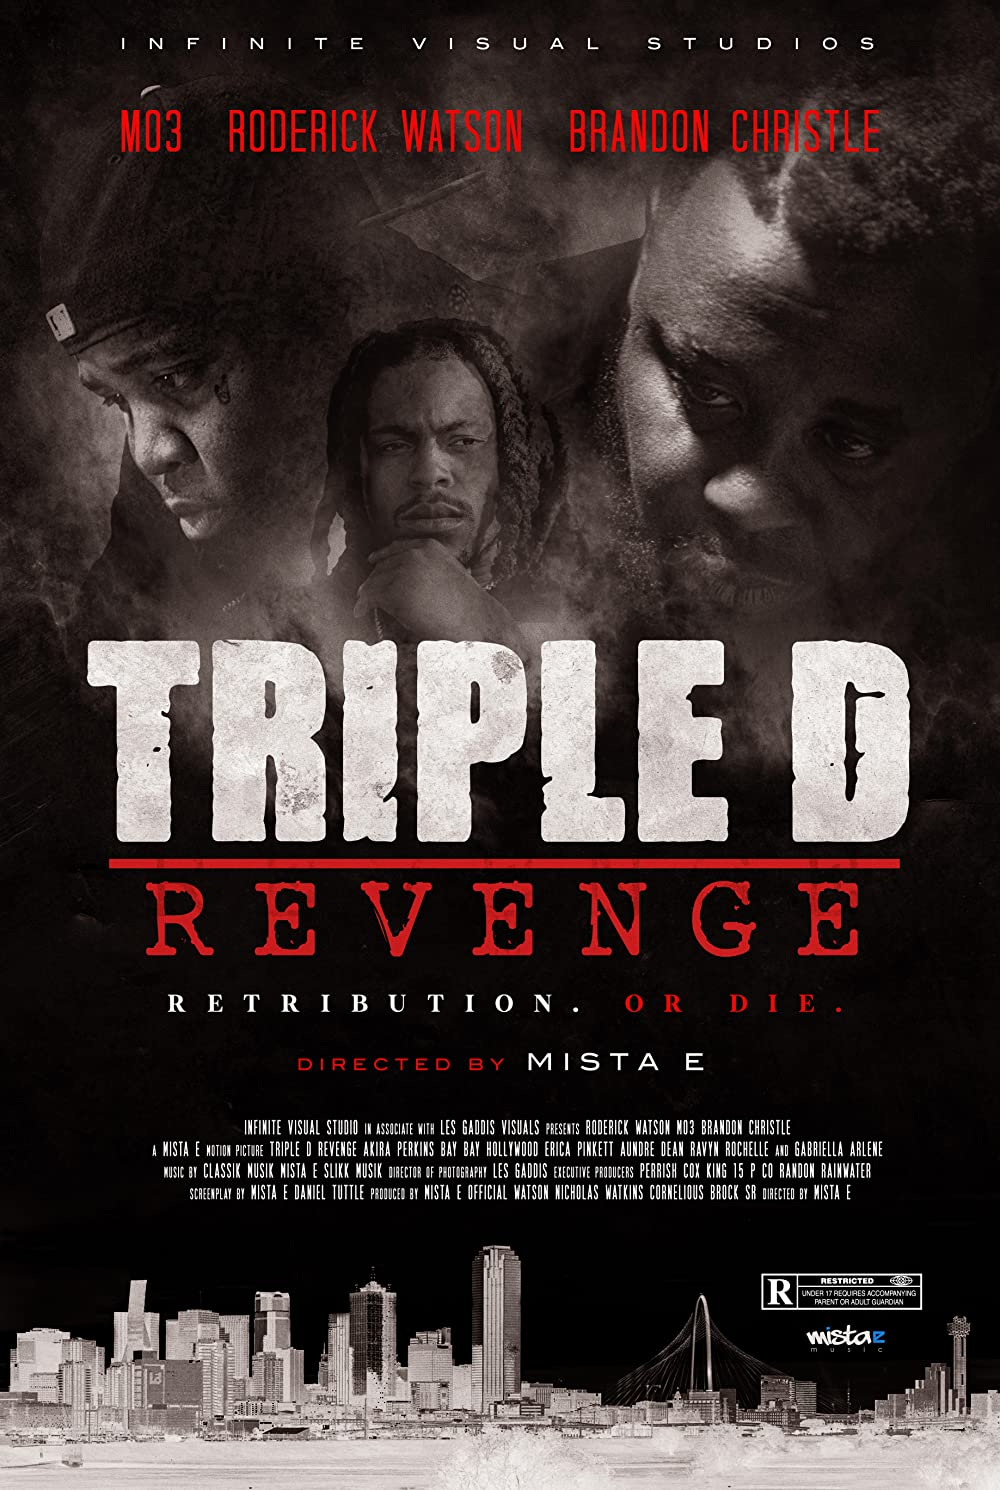 Watch The Trailer For Late-Mo3 Film 'Triple D Revenge' Out Thursday